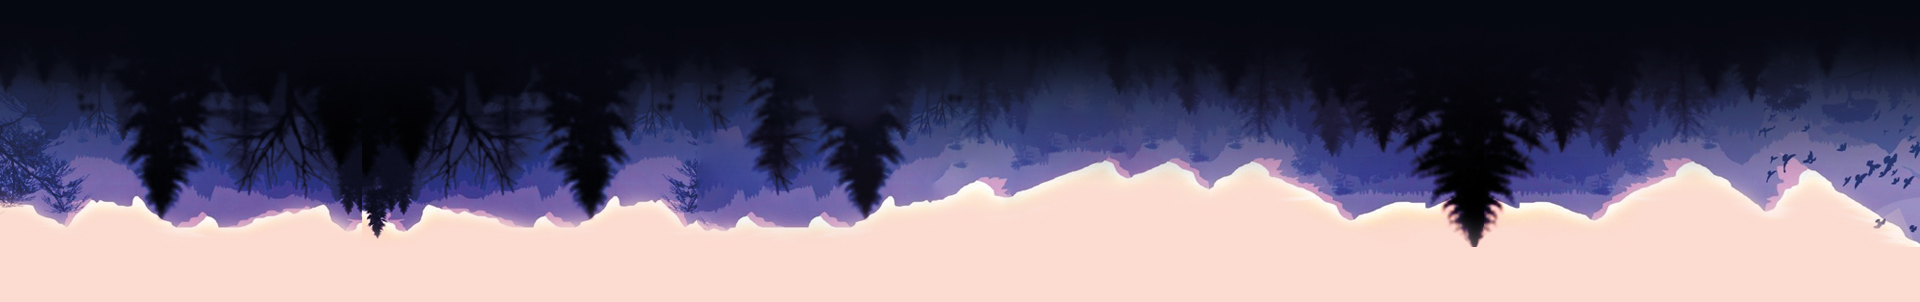 mountains-upside-down